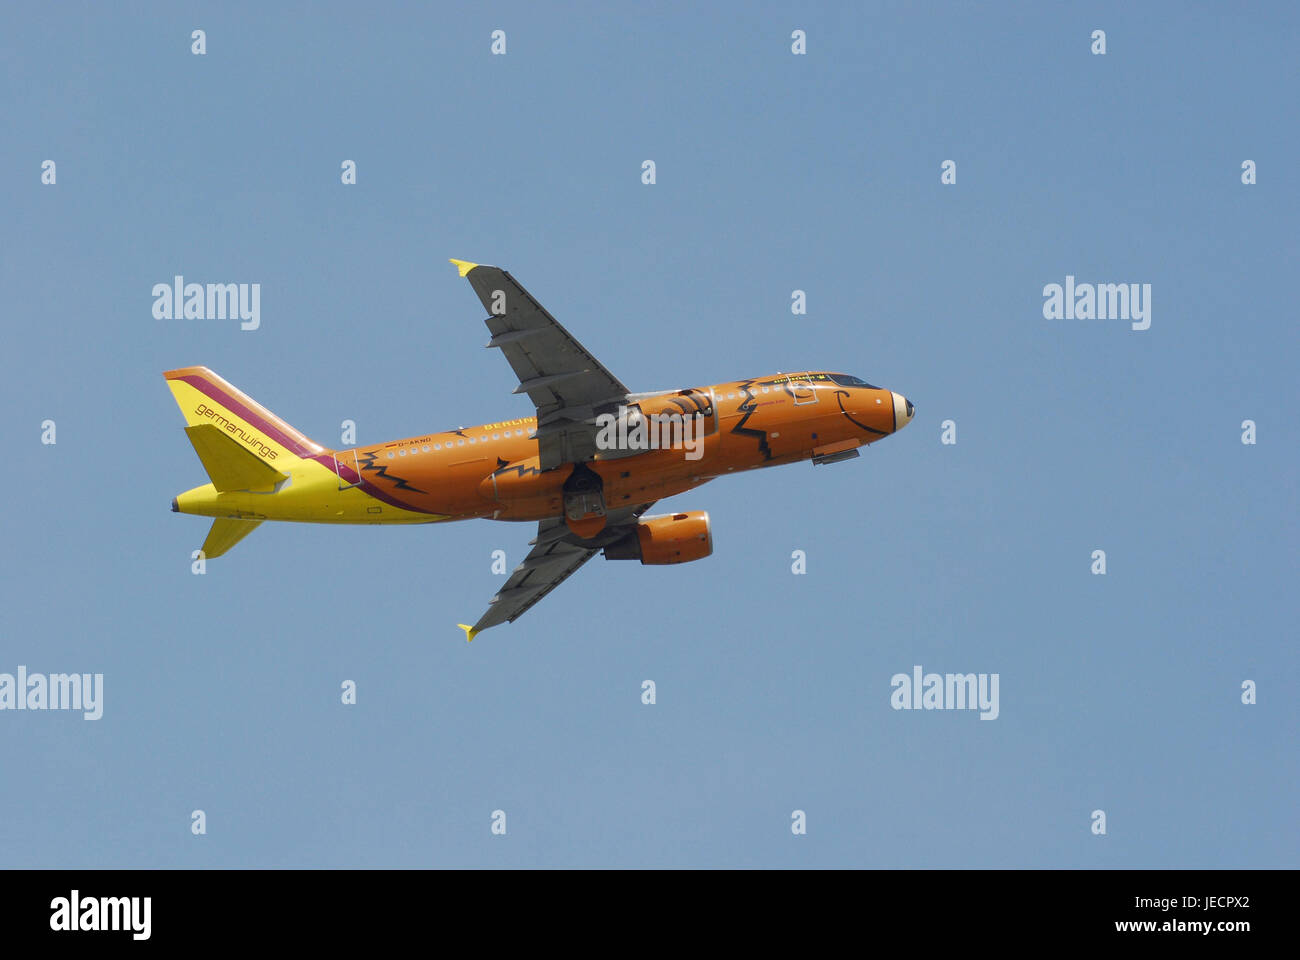 Air liner, airbus A319, flight, no property release, civil aviation, airplane, traffic airplane, standard body airplane, - Stock Image